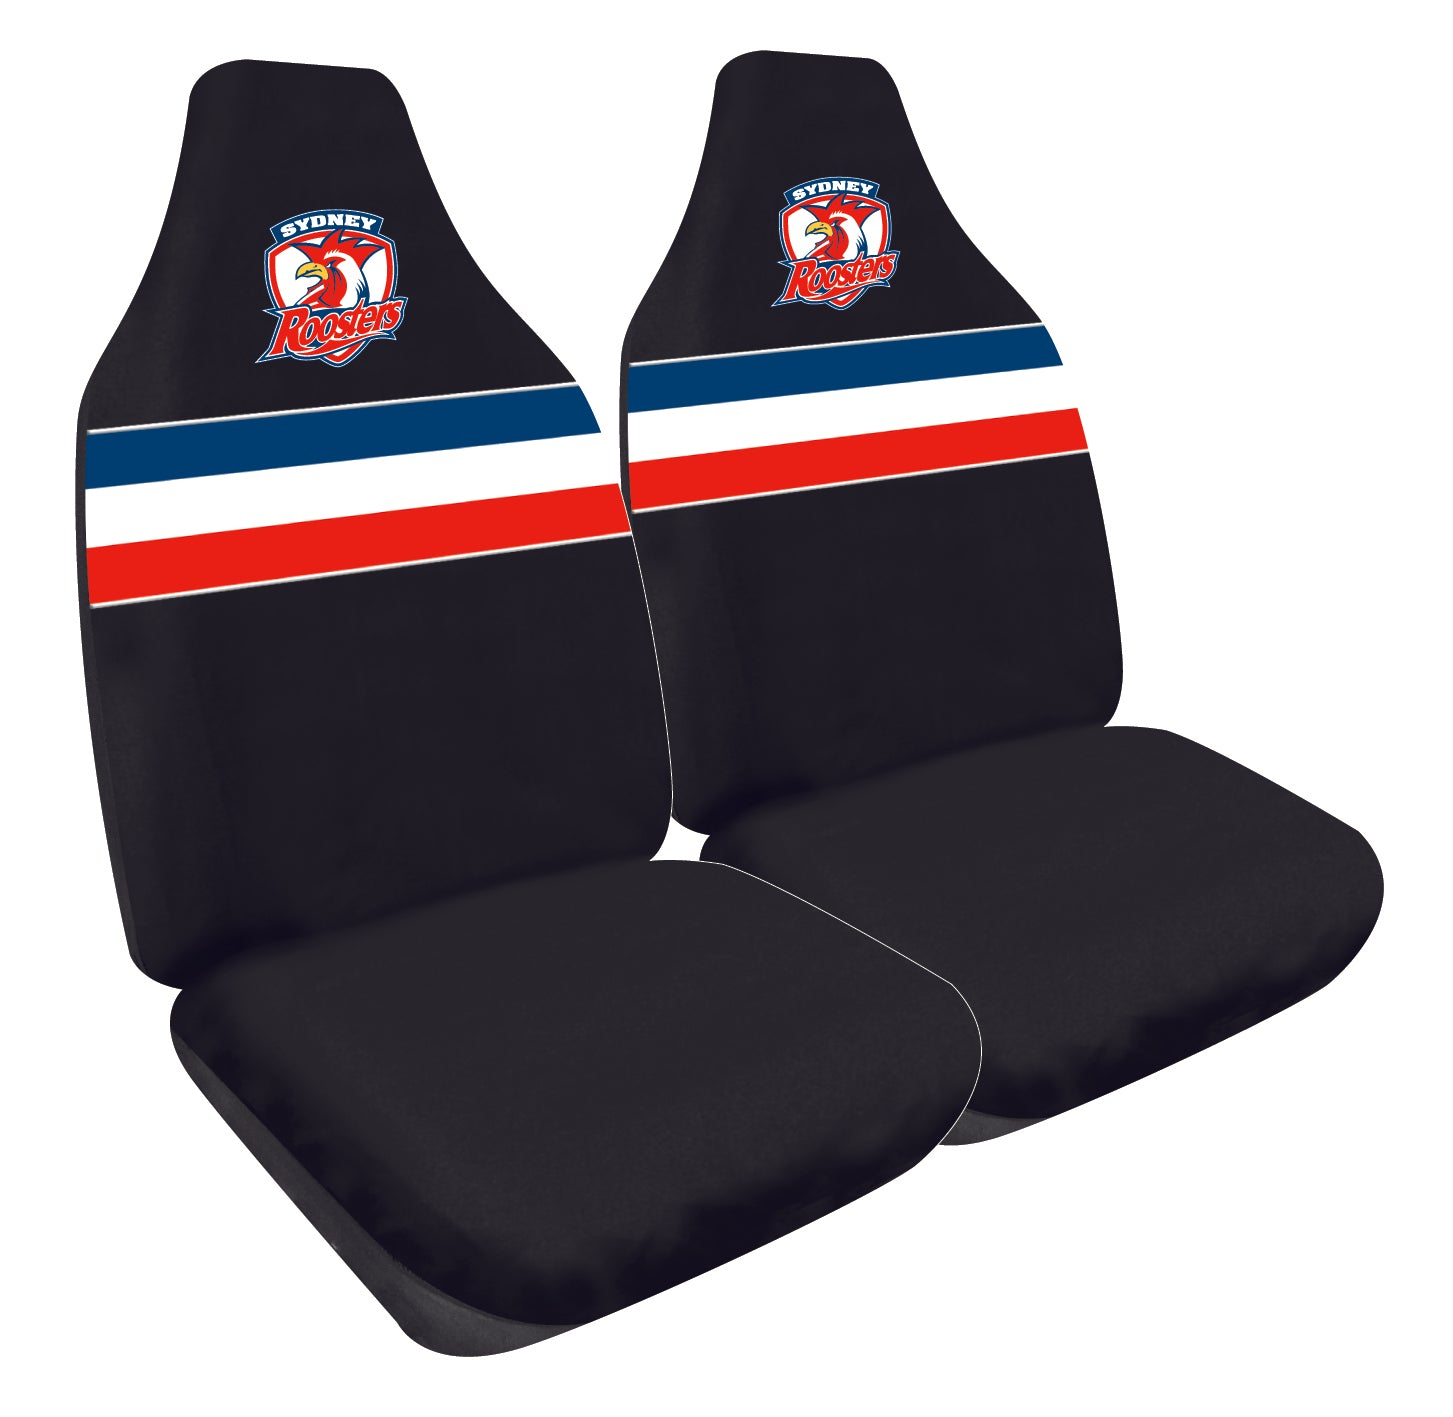 Sydney Roosters Car Seat Covers